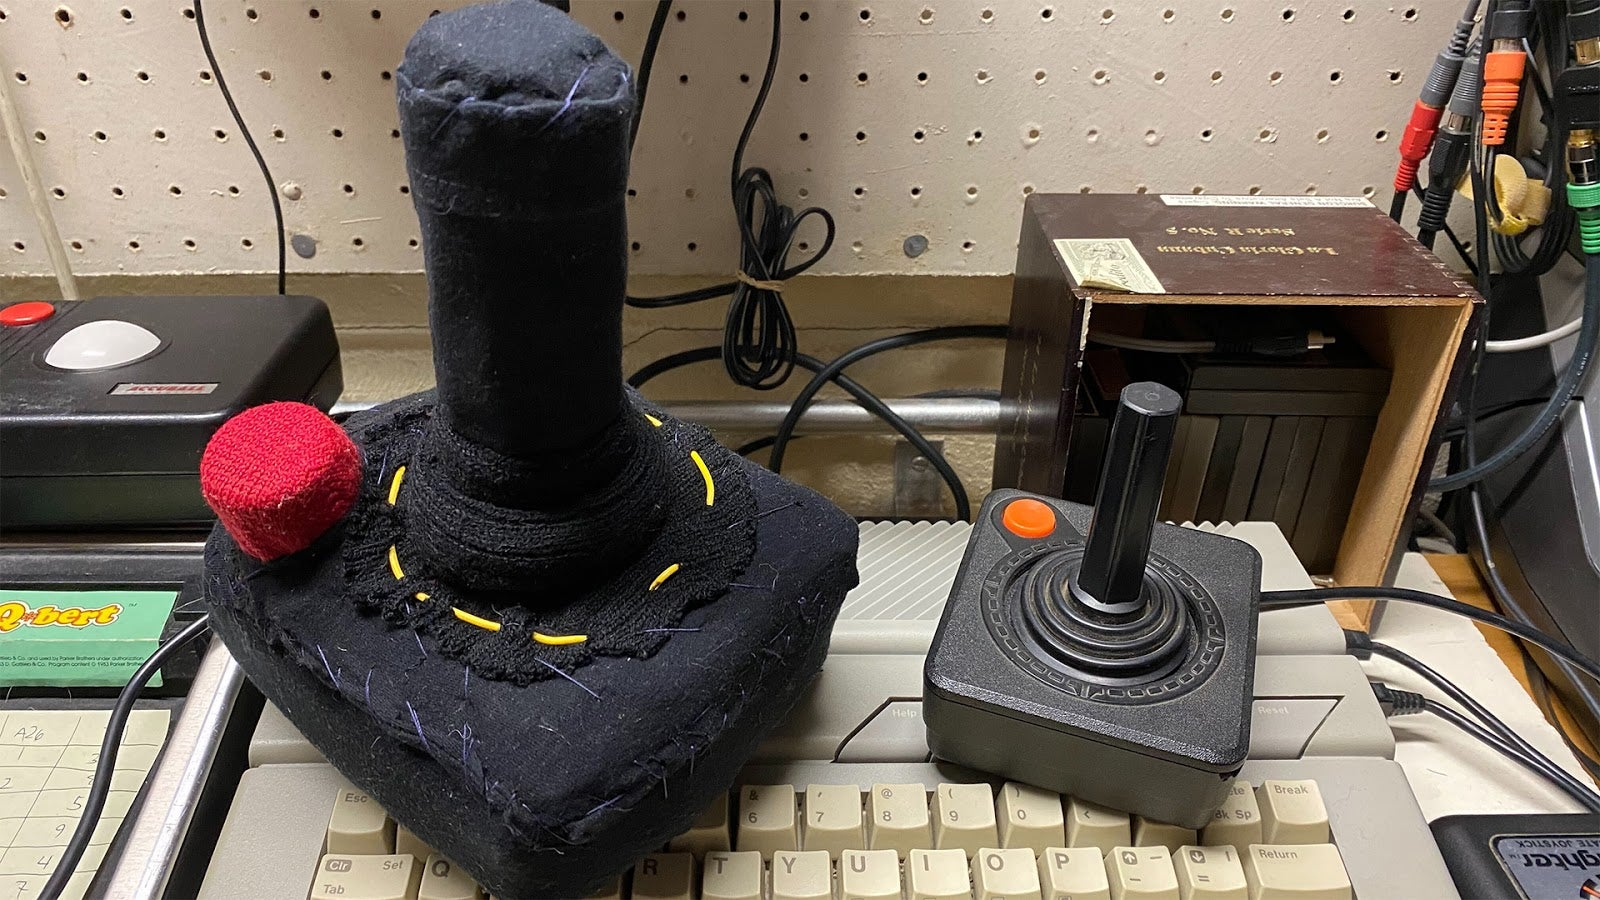 Driven Mad By Lockdown, Jalopnik Editor Sews A Working Plush Atari 2600 Joystick